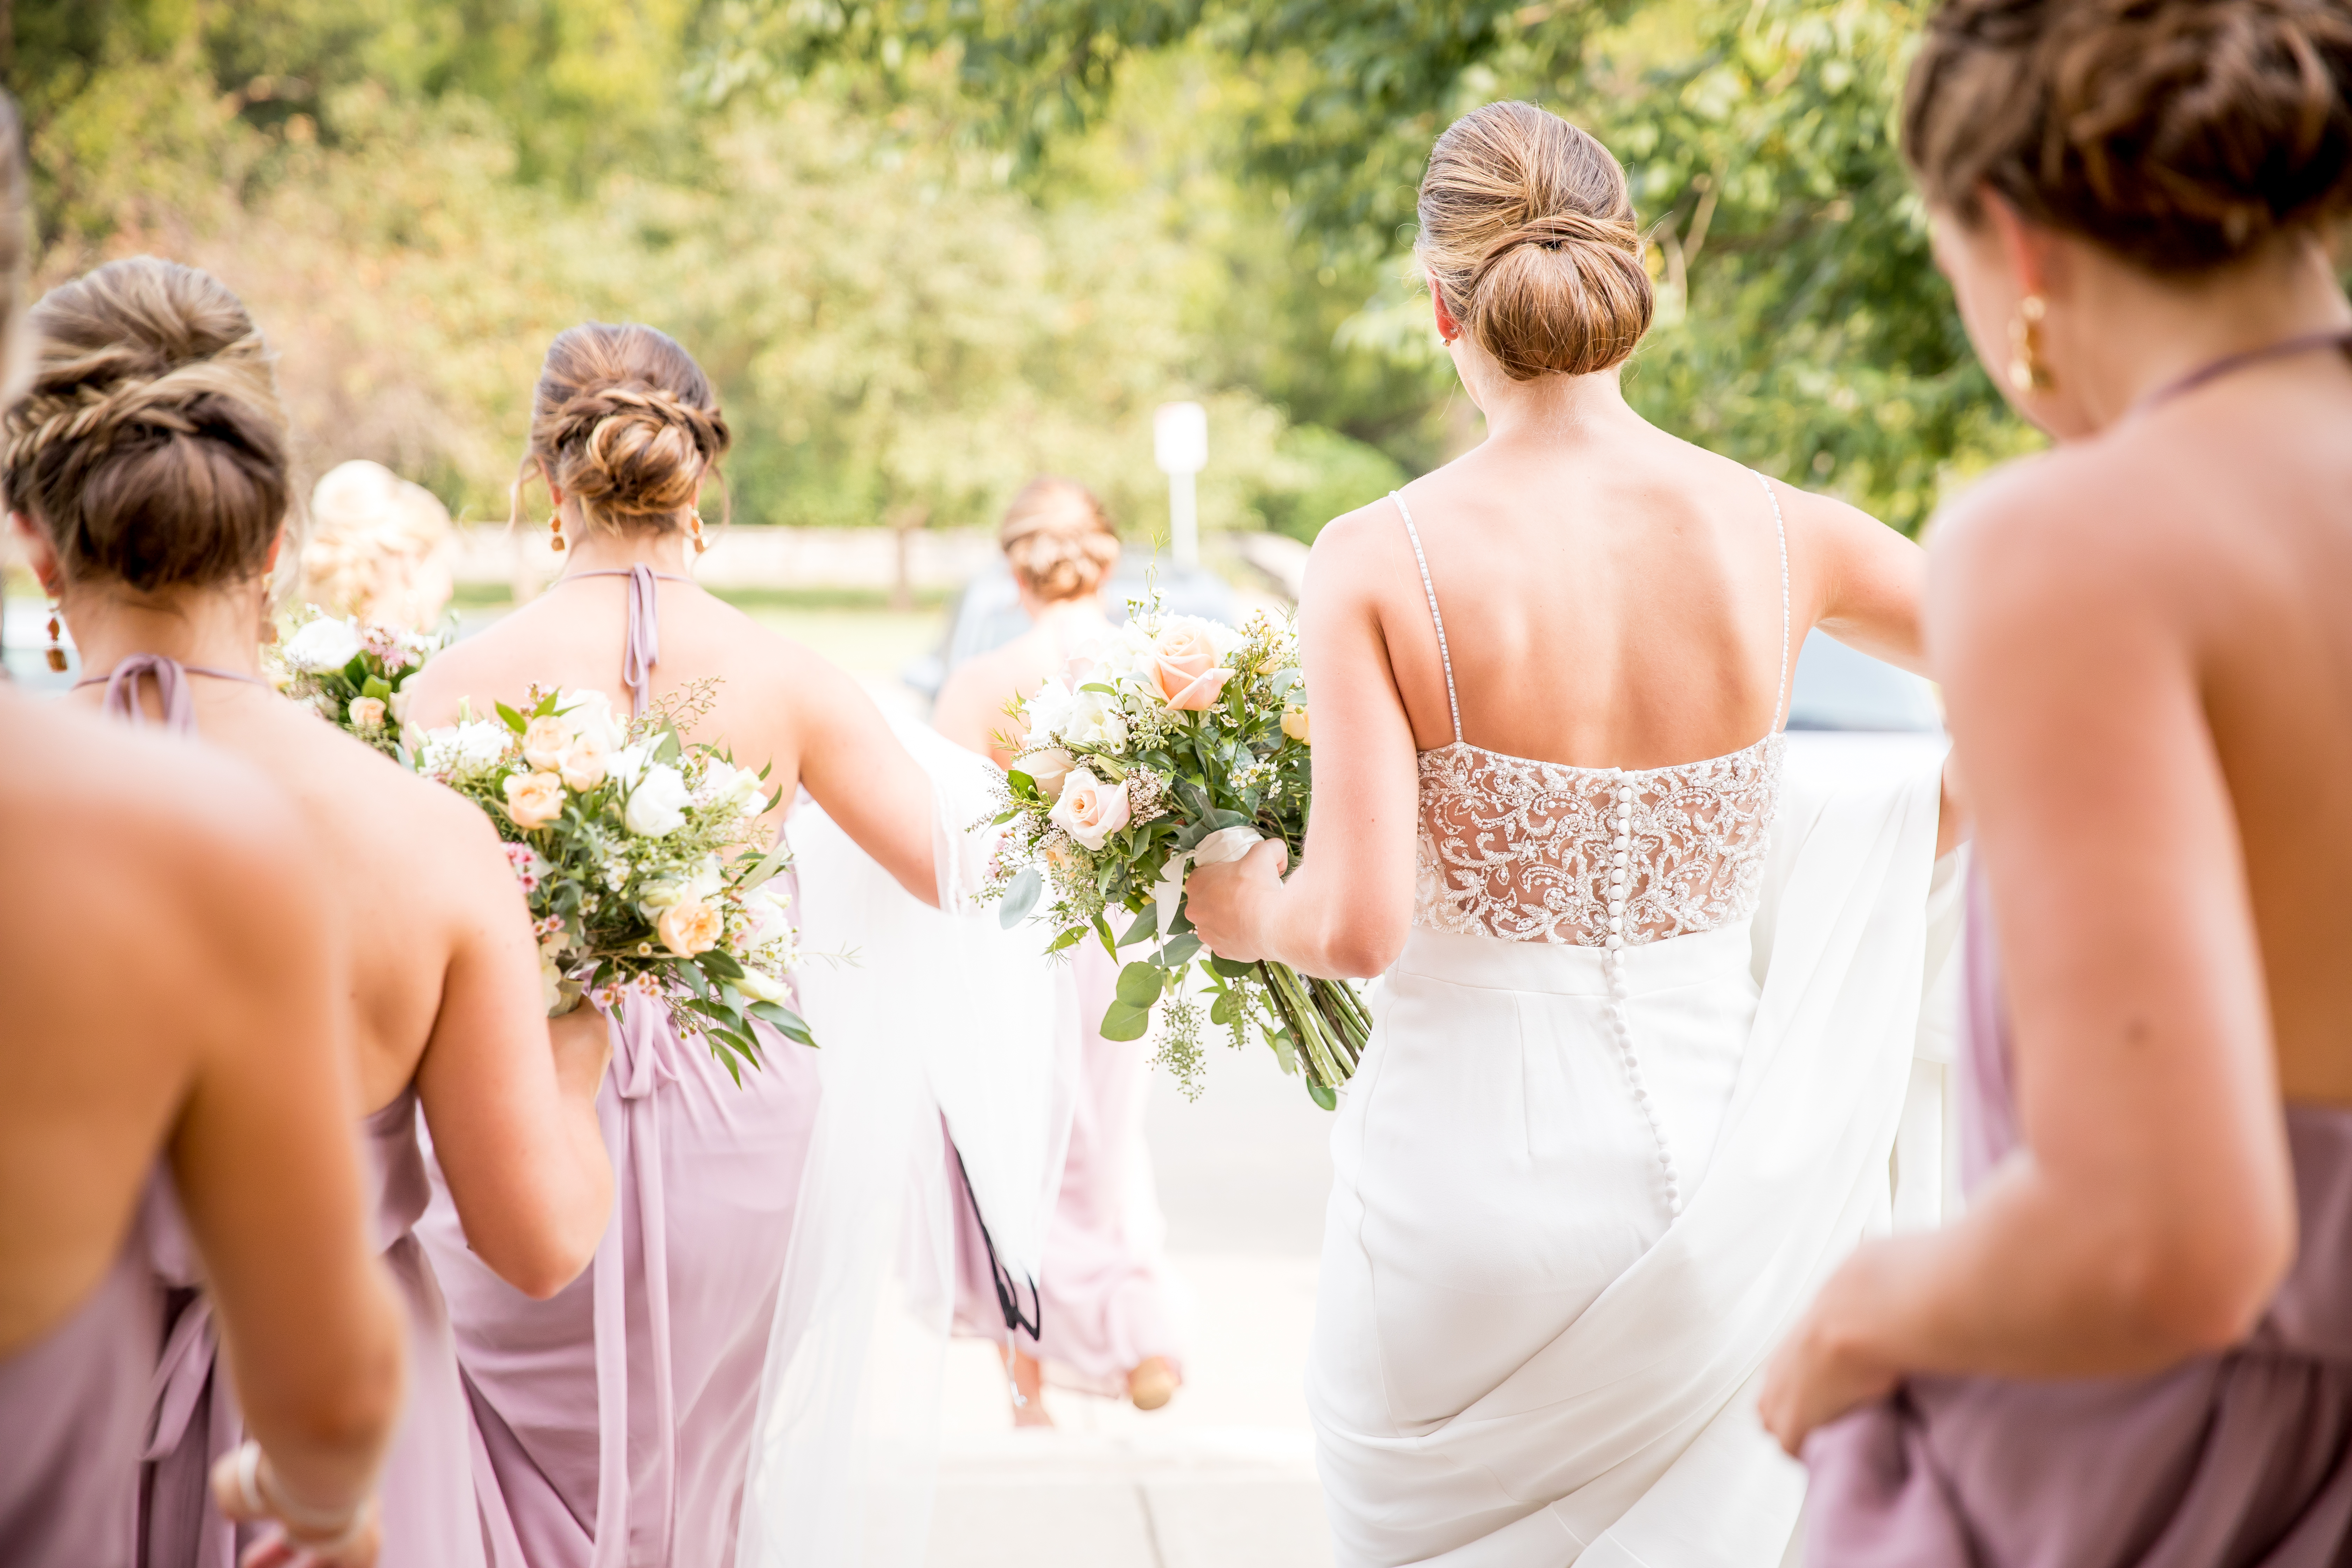 loose park bridesmaids wedding photo